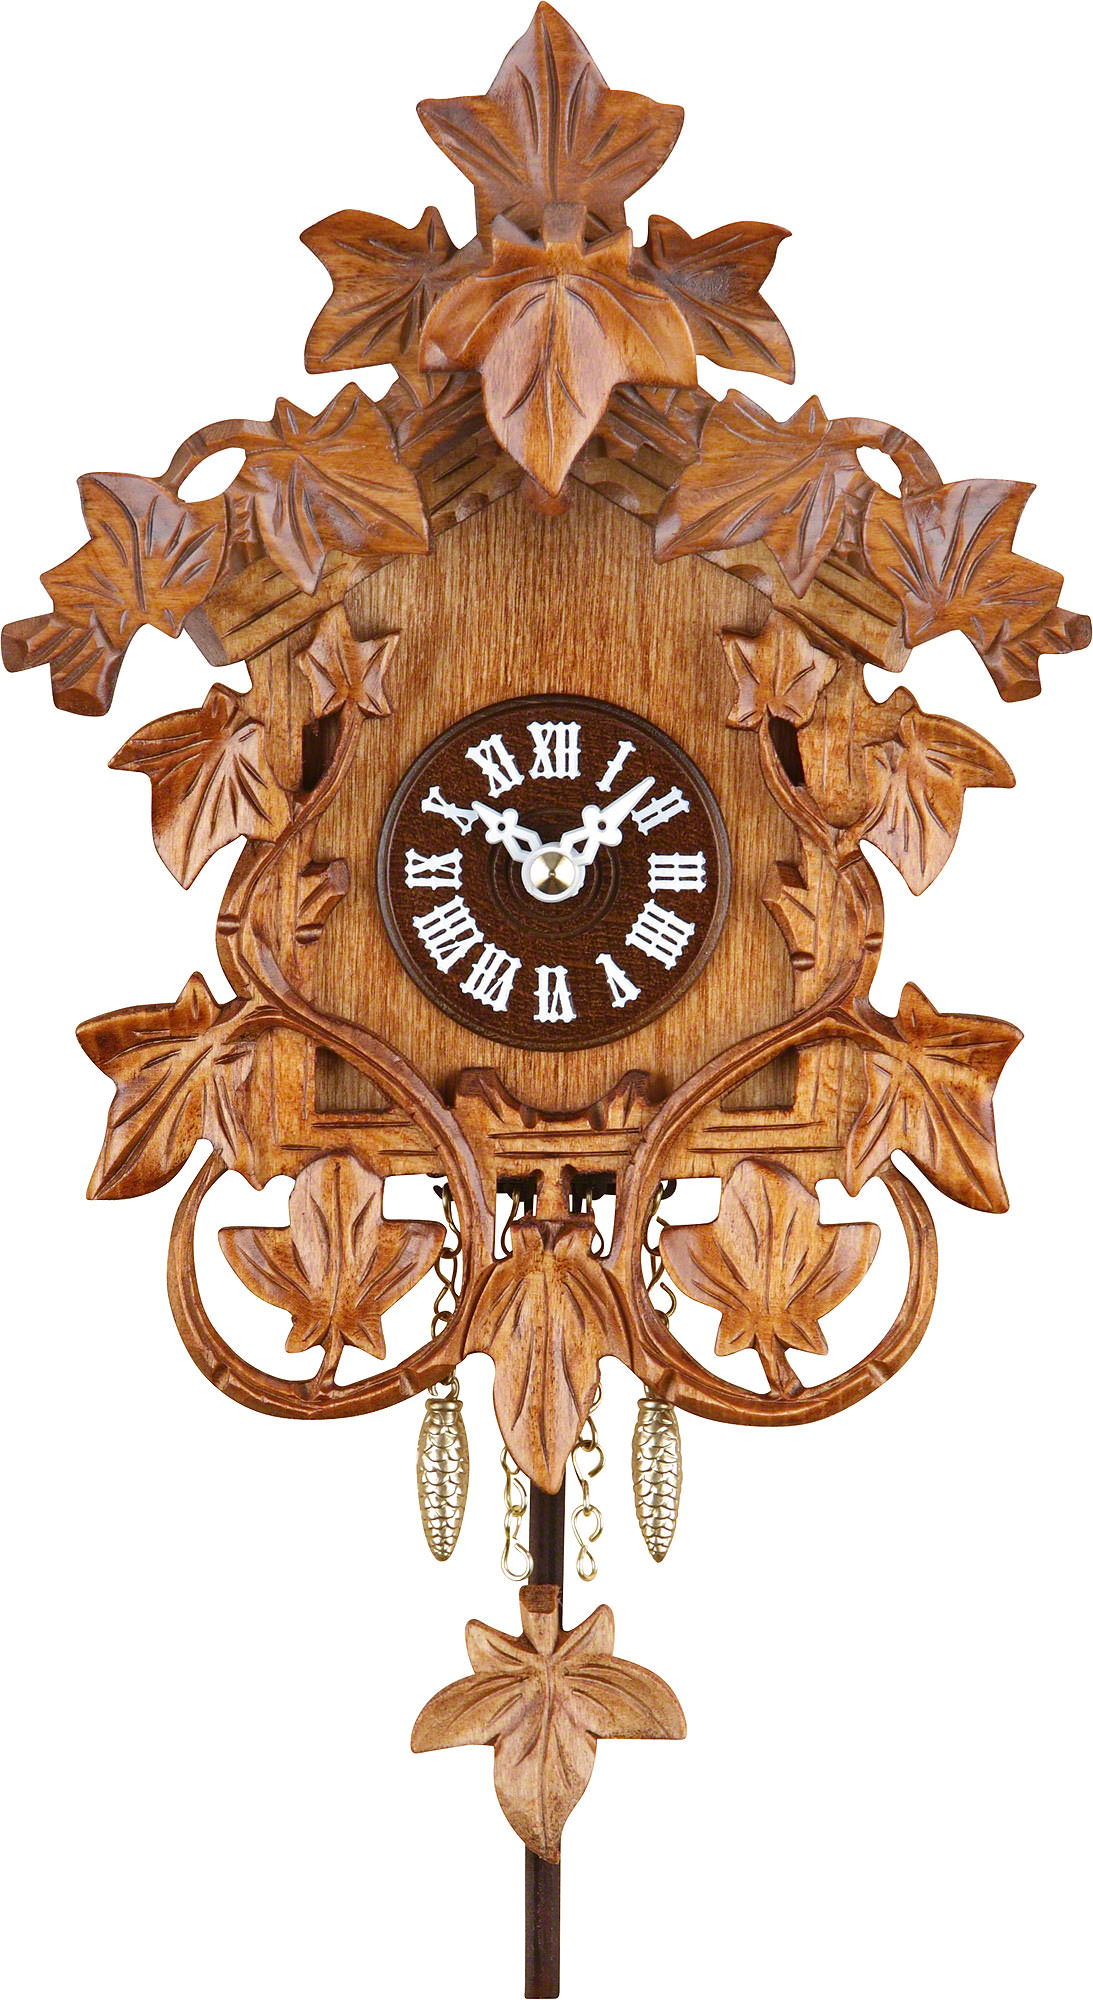 Cuckoo clock kuckulino quartz movement black forest pendulum clock style 20cm by trenkle uhren - Cuckoo clock pendulum ...